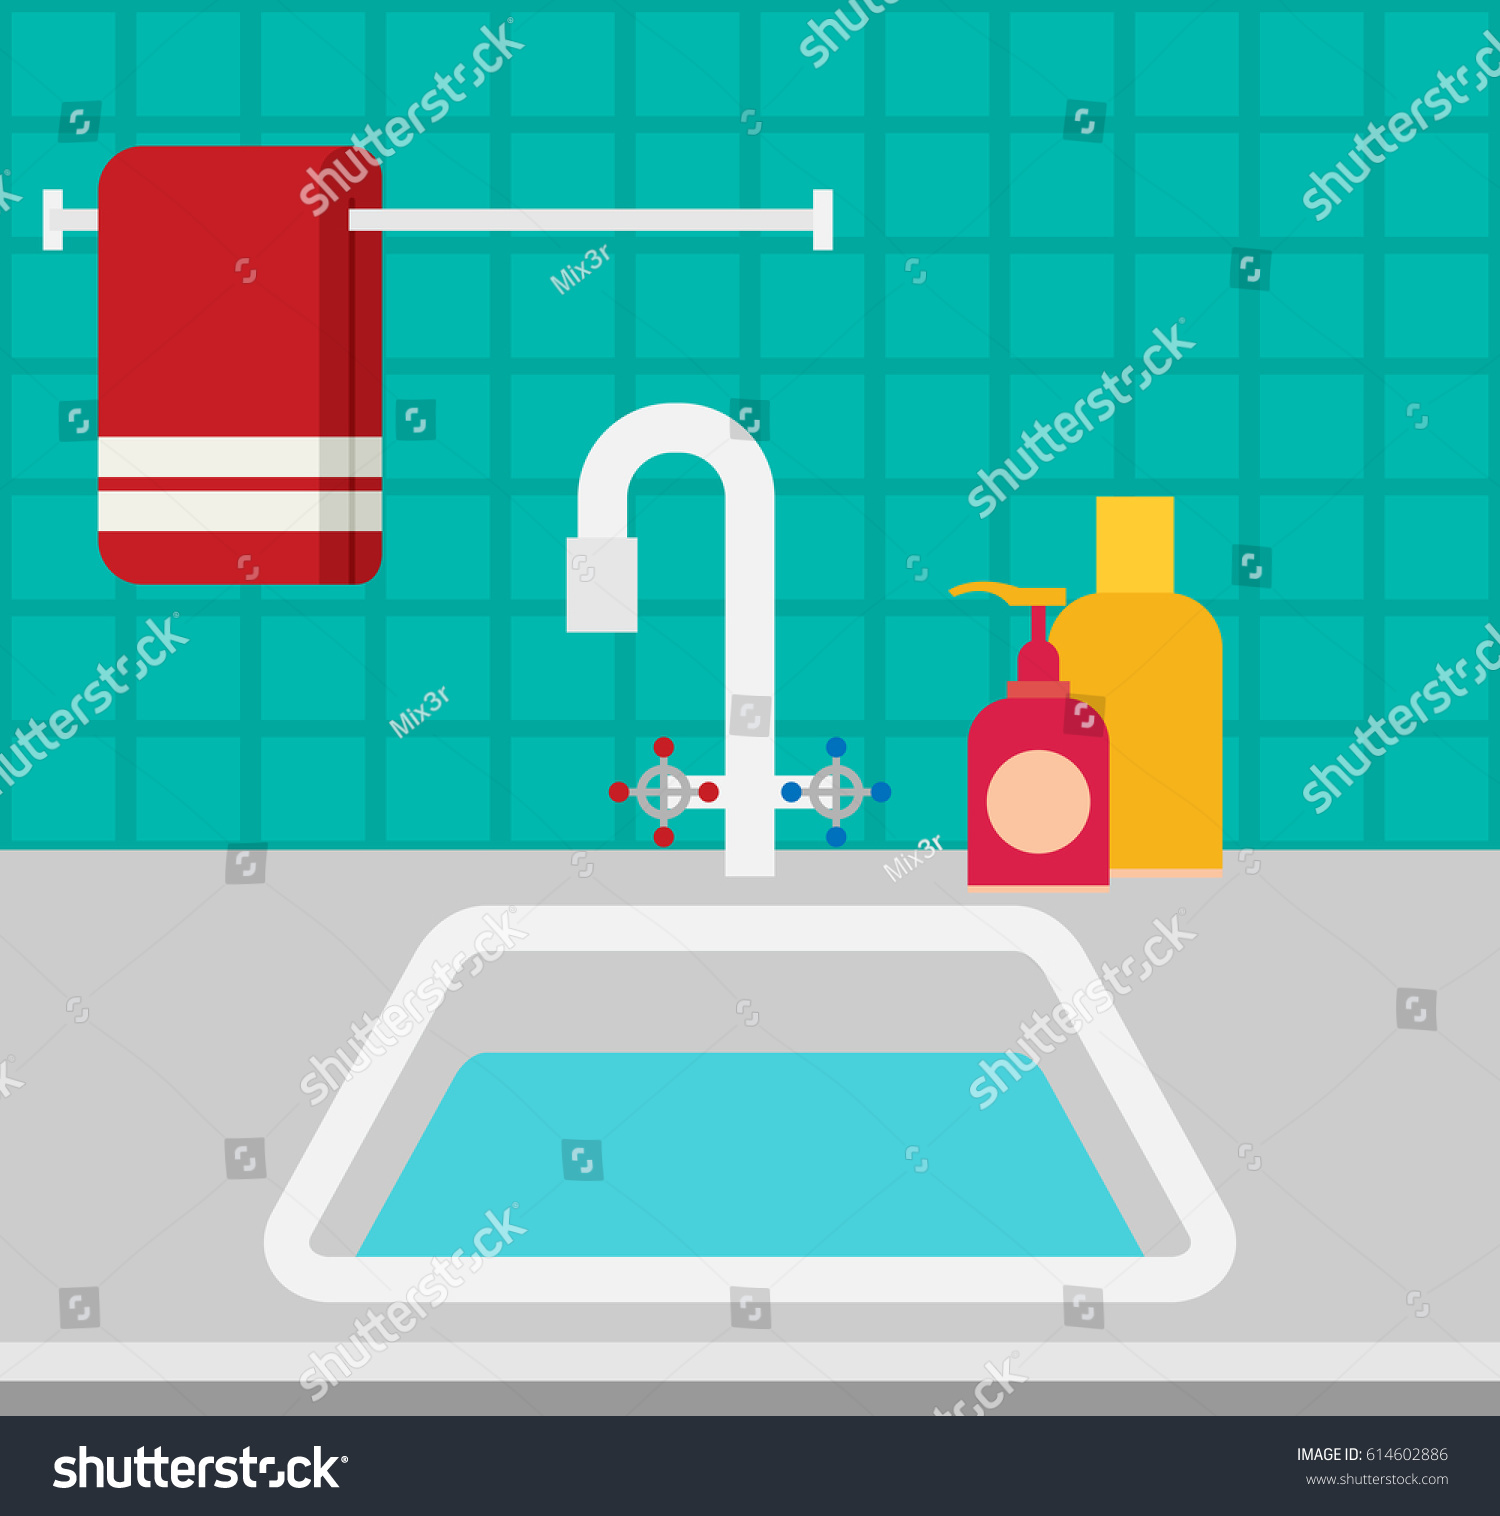 Kitchen Sink Flat Vector Stock Vector HD (Royalty Free) 614602886 ...